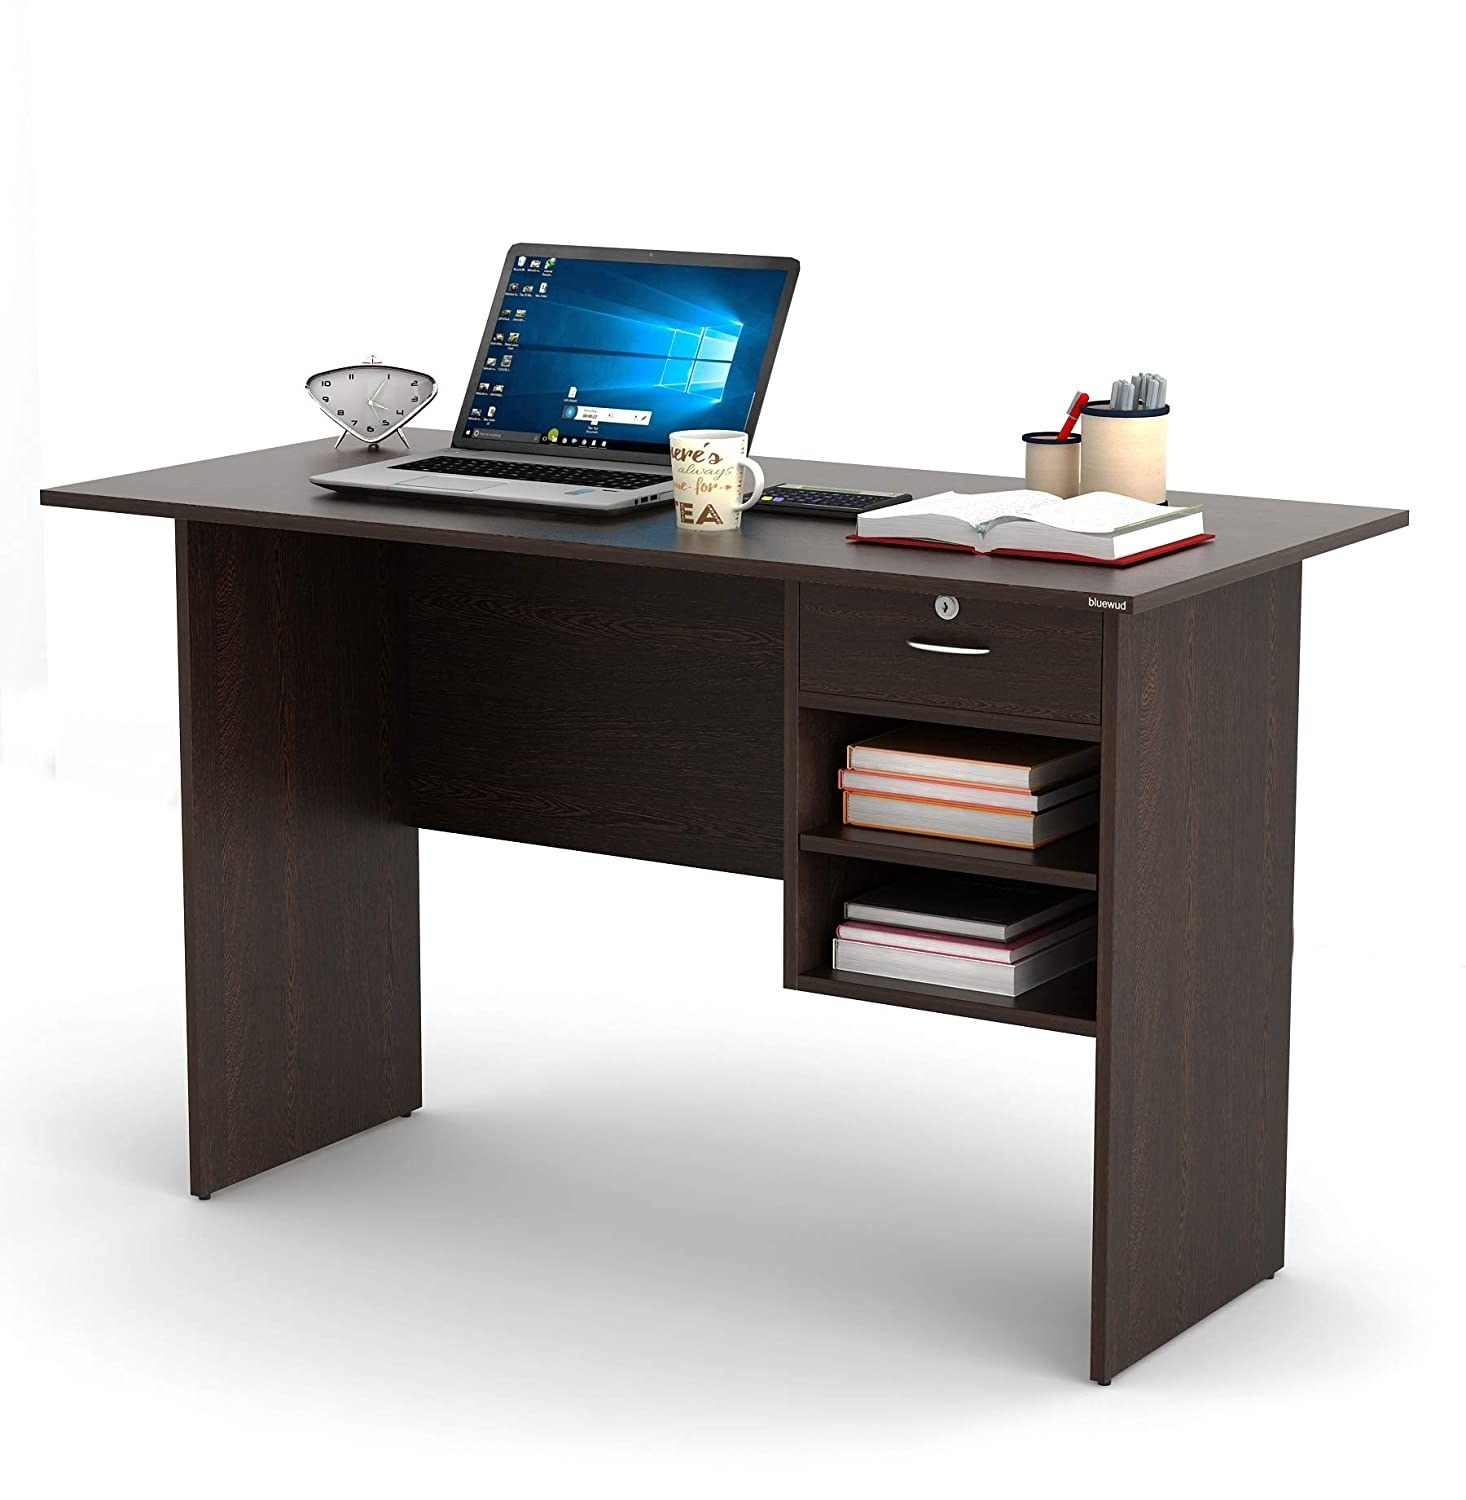 A desk with a laptop, books, and multiple stationery items on it